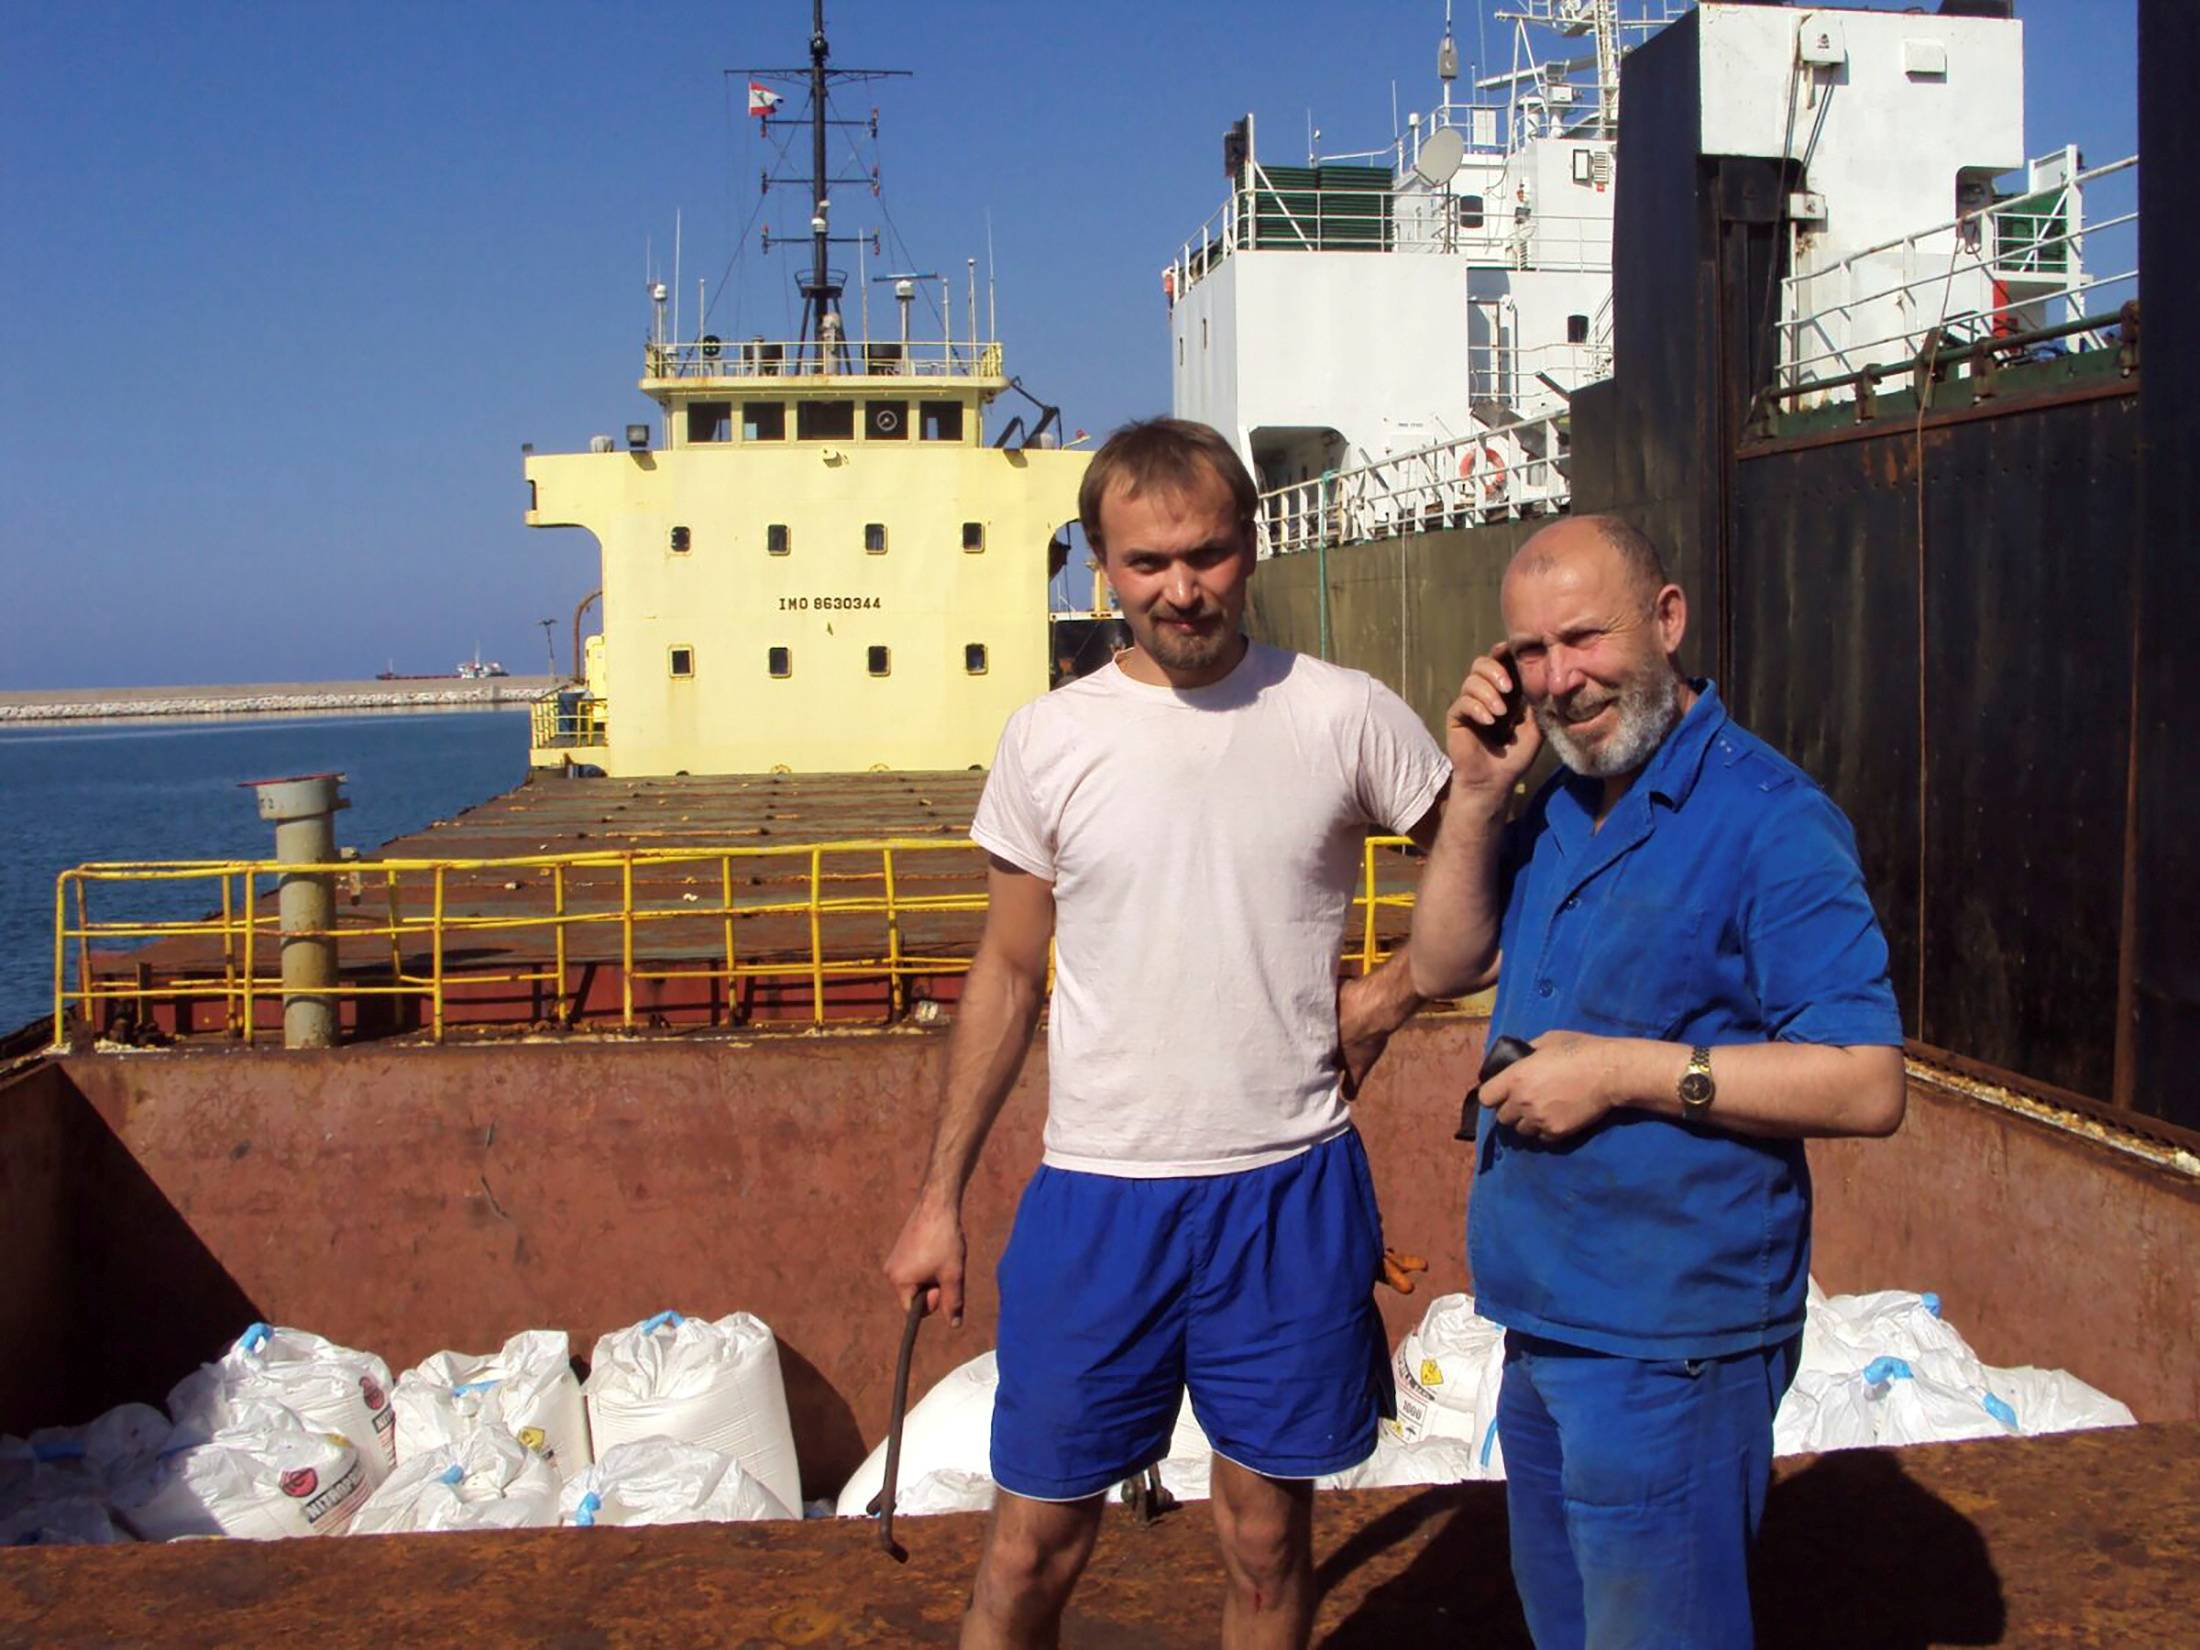 Boris Prokoshev (right), captain of the cargo vessel Rhosus, and boatswain Boris Musinchak pose next to a freight hold loaded with ammonium nitrate in the port of Beirut, Lebanon, in 2014. | REUTERS